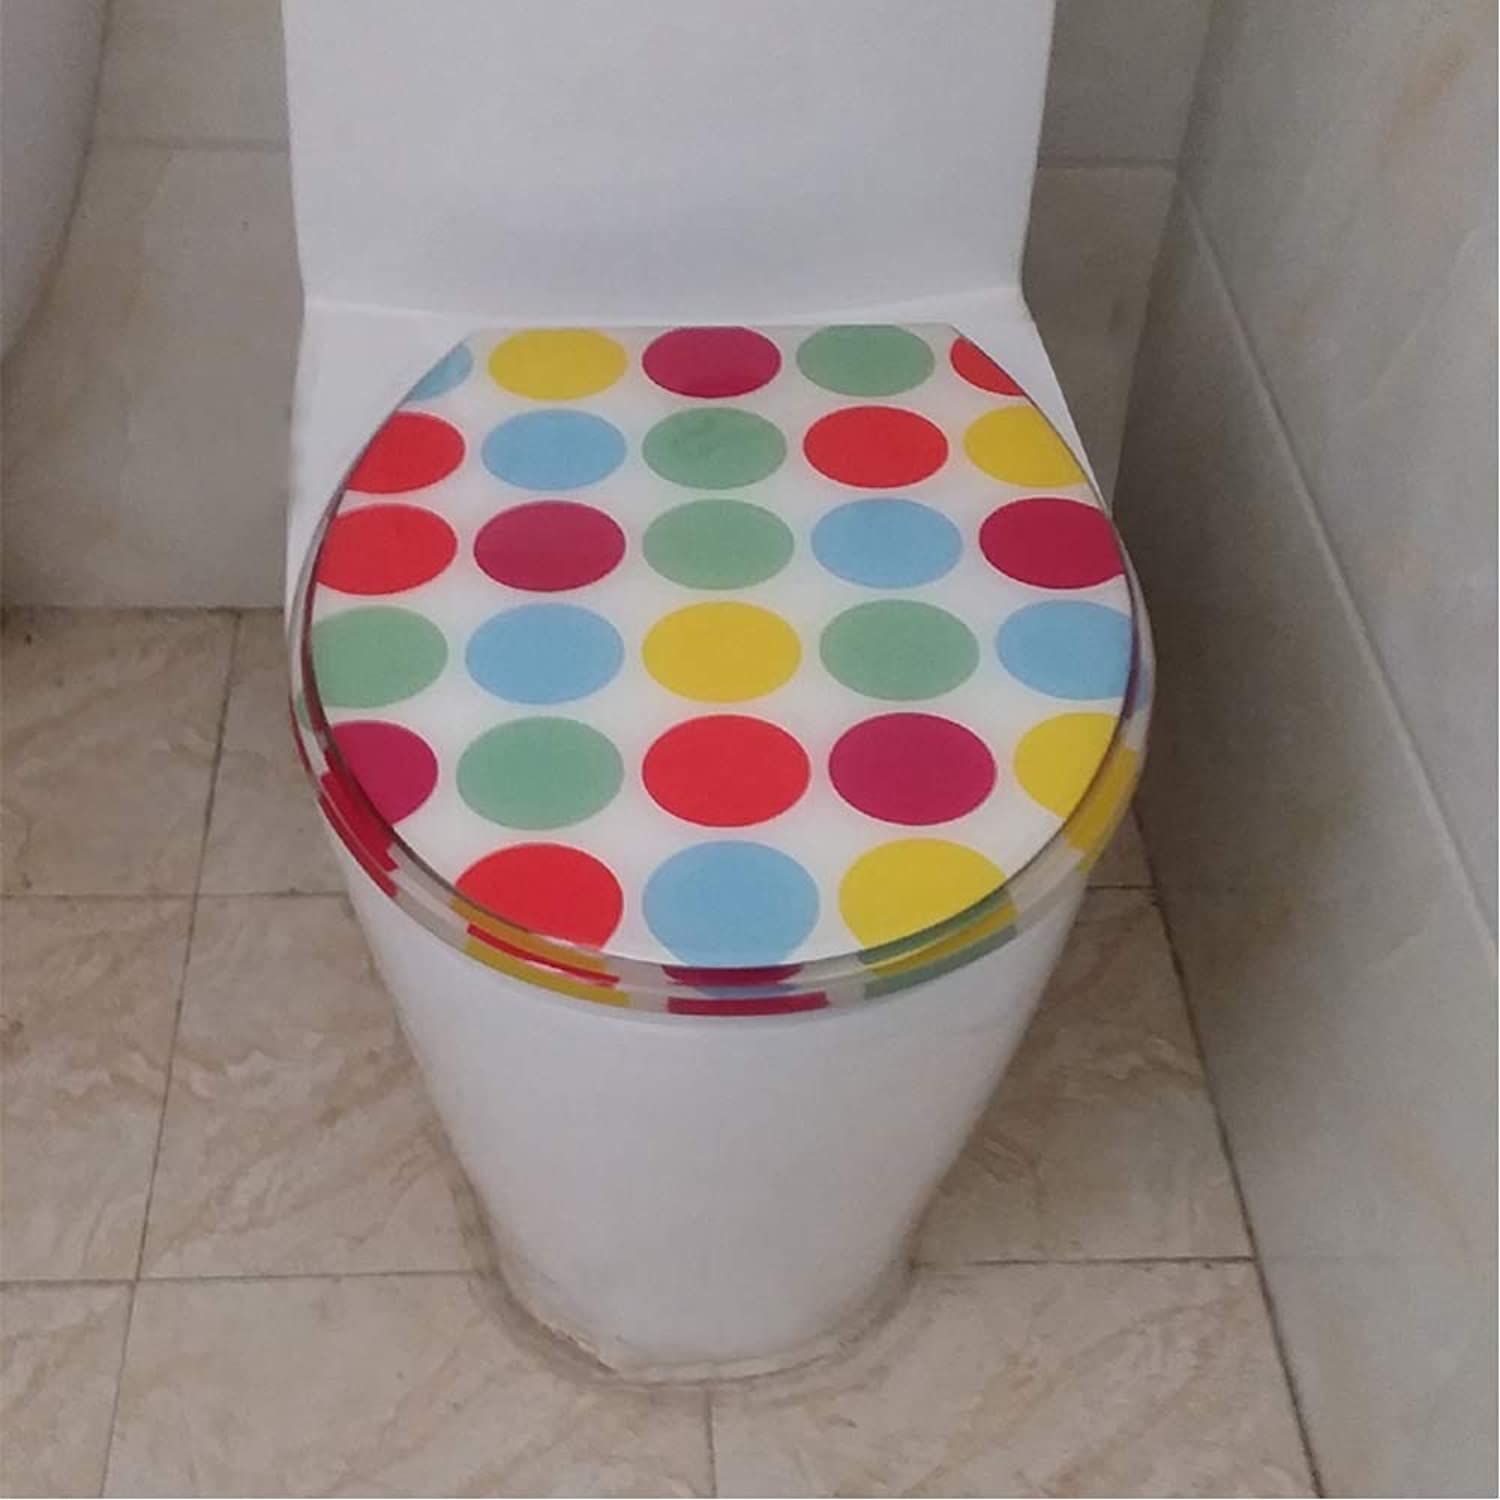 JKYQ colorful circles Toilet lid Universal Anti-Bacterial waterproof thickening Durable Suitable for UVO type Toilet